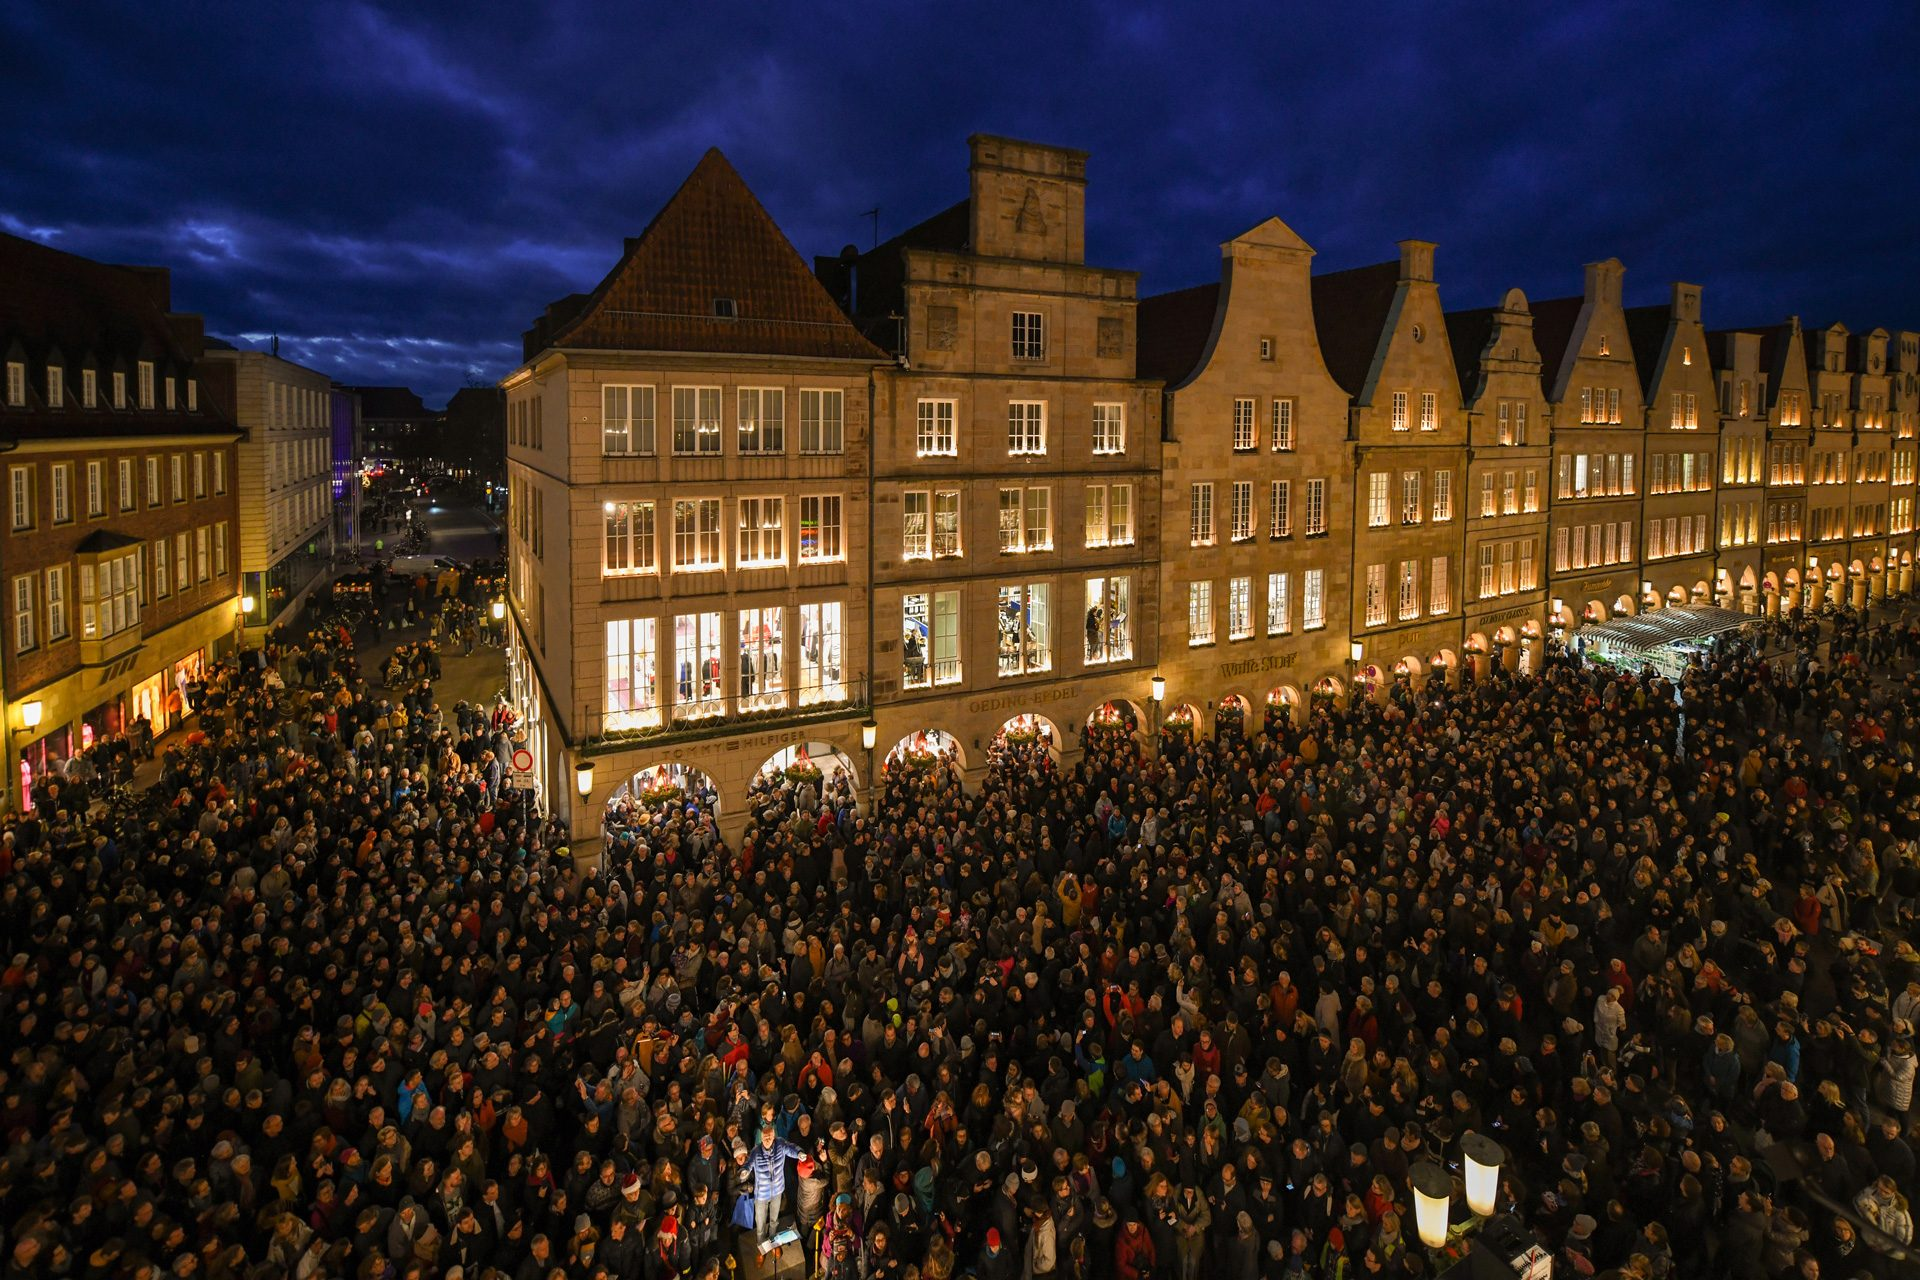 Adventssingen-am-Sentezbogen_Prinzipialmarkt